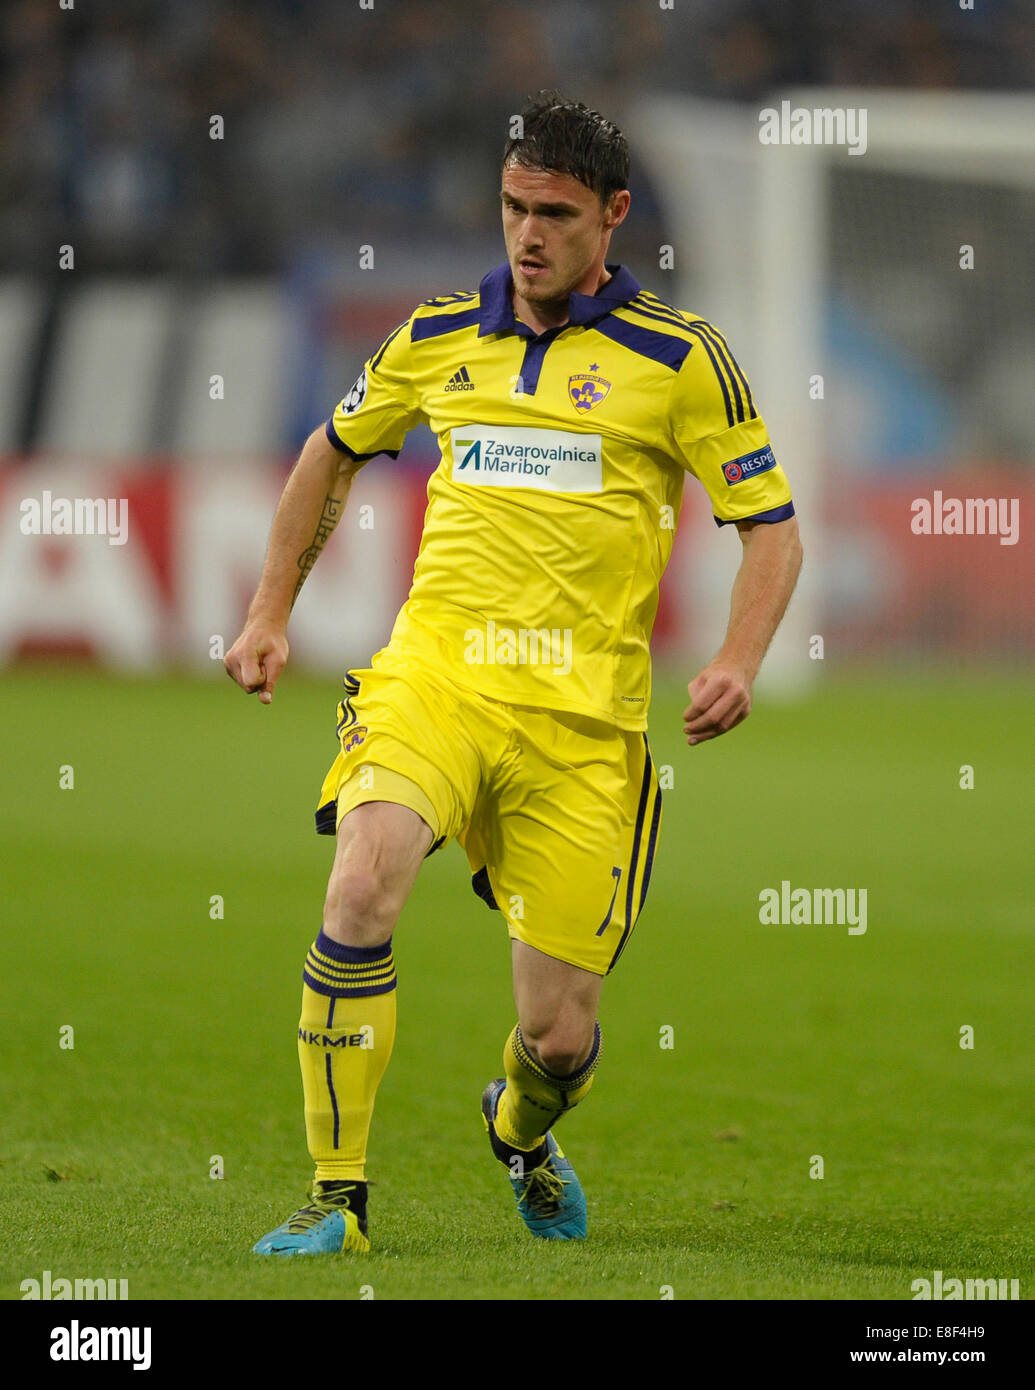 Gelsenkirchen, Germany 30.9.2014, Champions League 14/15 Group stage, Schalke 04 - NK Maribor -  Ales Mejac - Stock Image